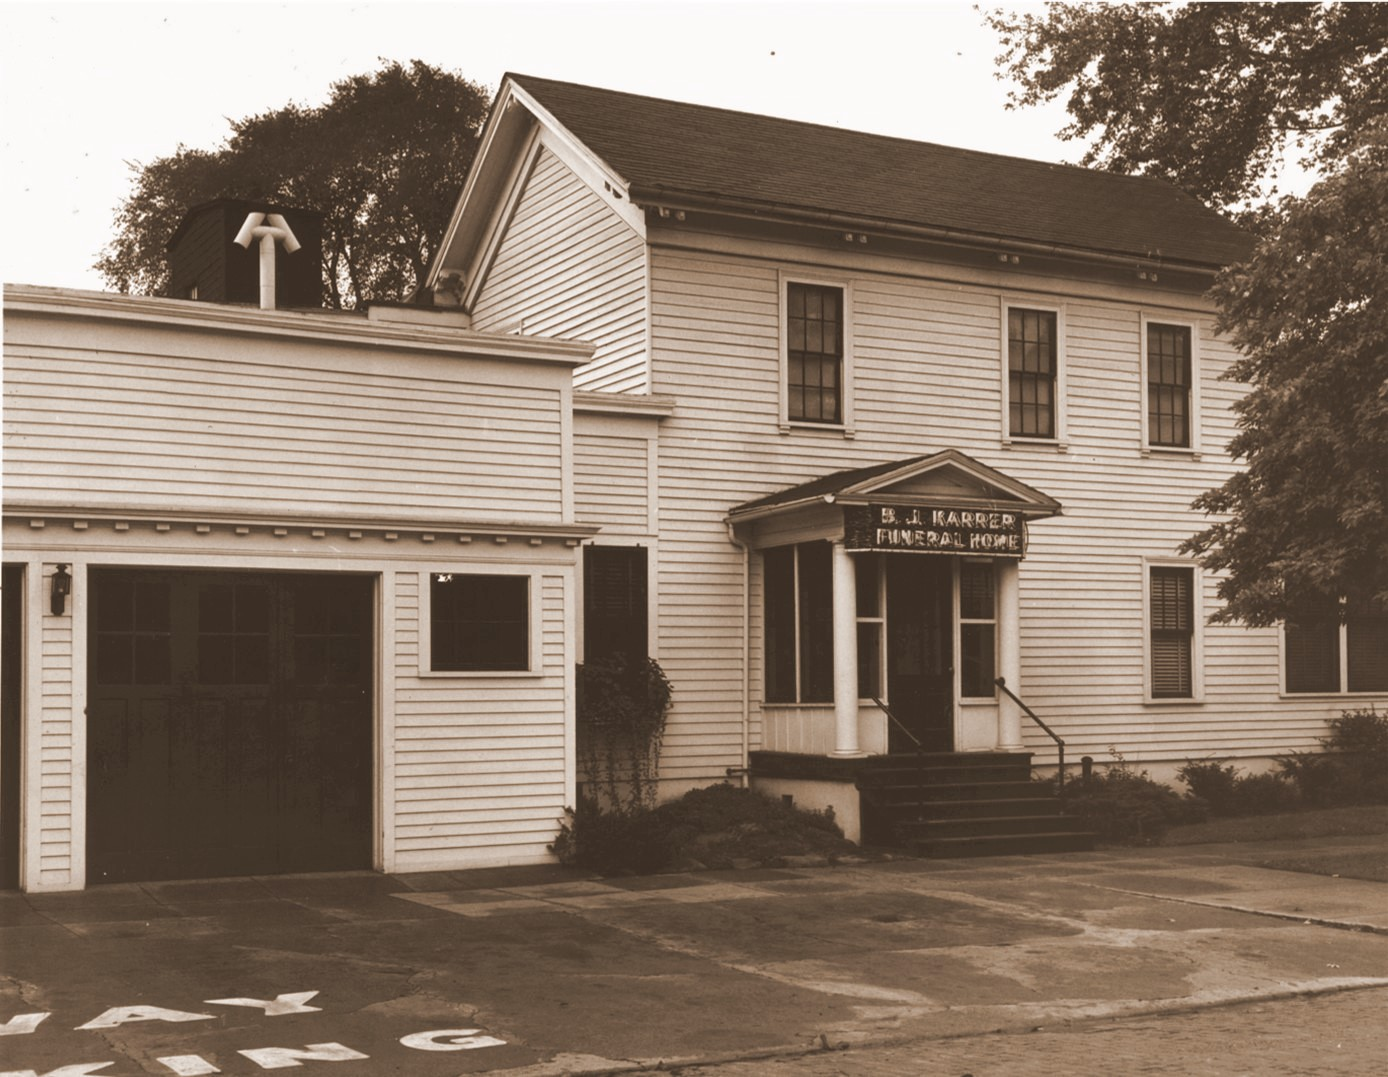 Karrer-Simpson Funeral Home 1923 to 1965